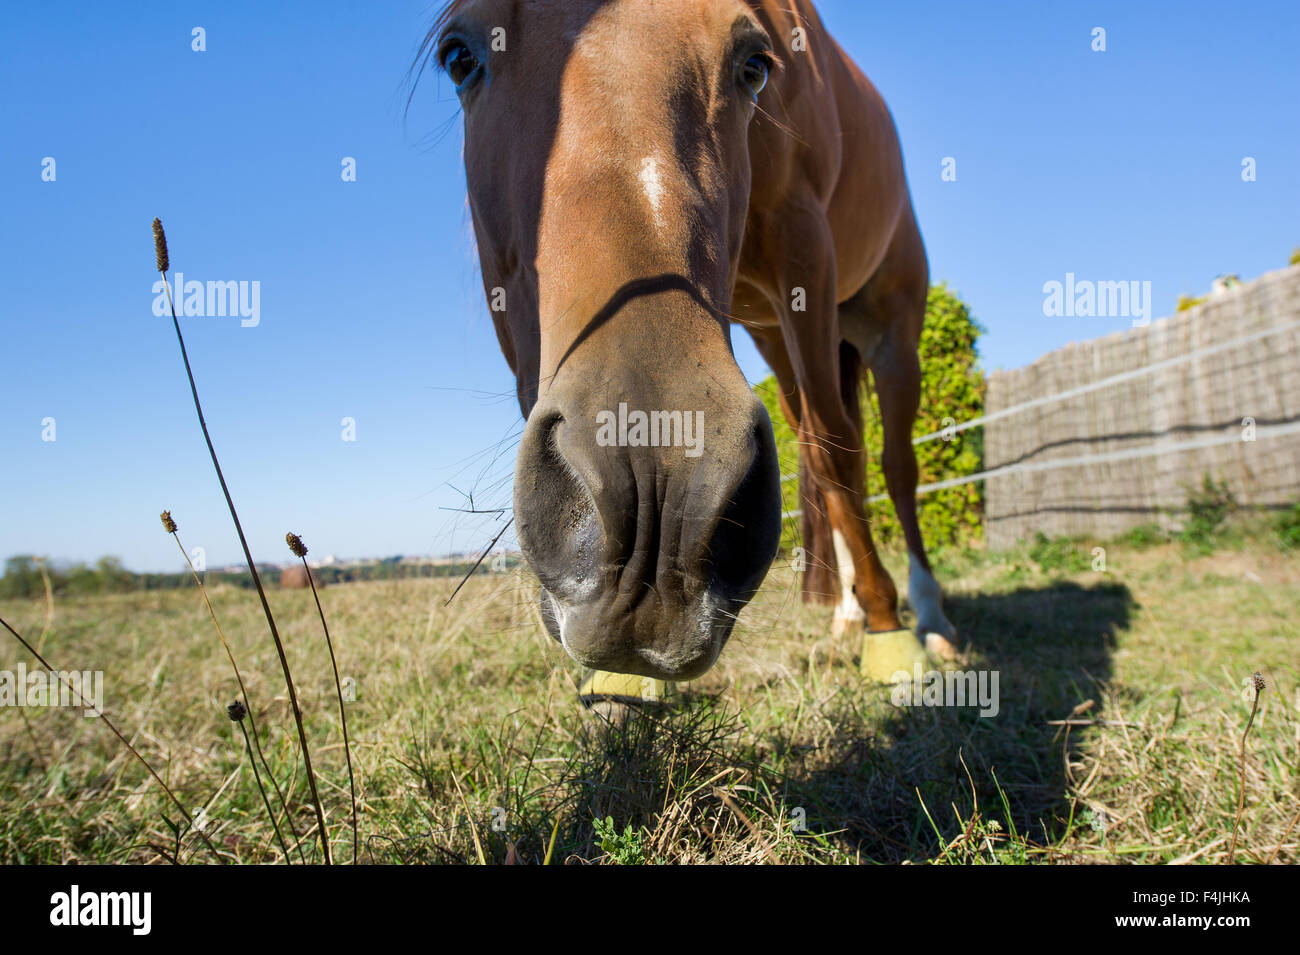 Horse on the pasture, head nostrils funny, wide, blue sky, grass, grazing, vis a vis, close, close up, eat, eats - Stock Image